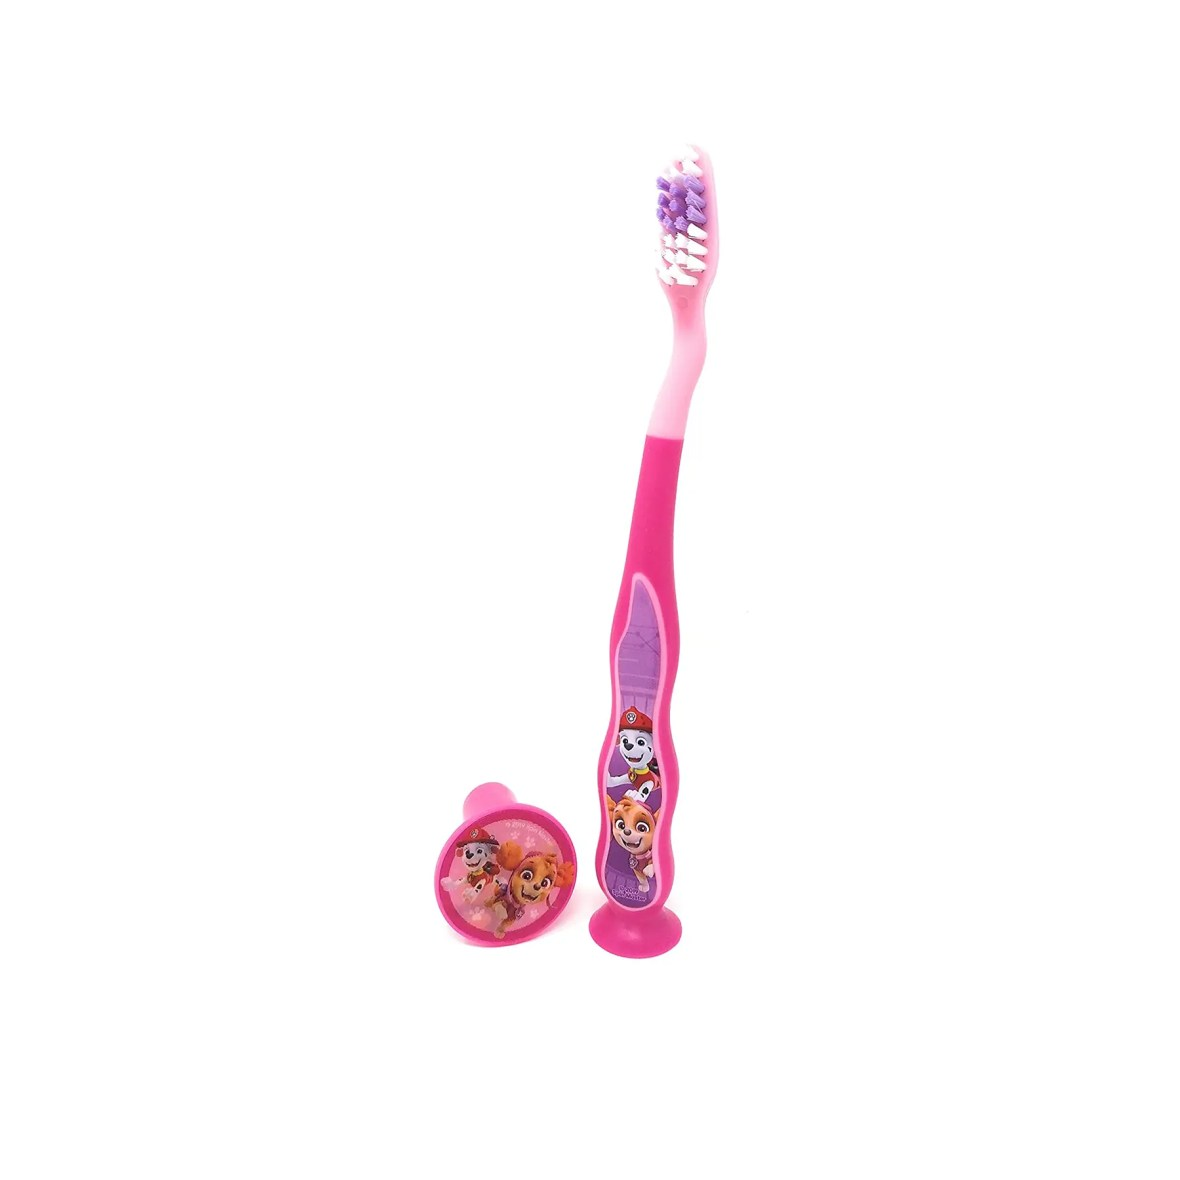 PAW Patrol Toothbrush for Kids 3+ yrs. Soft Suction Cup Pink